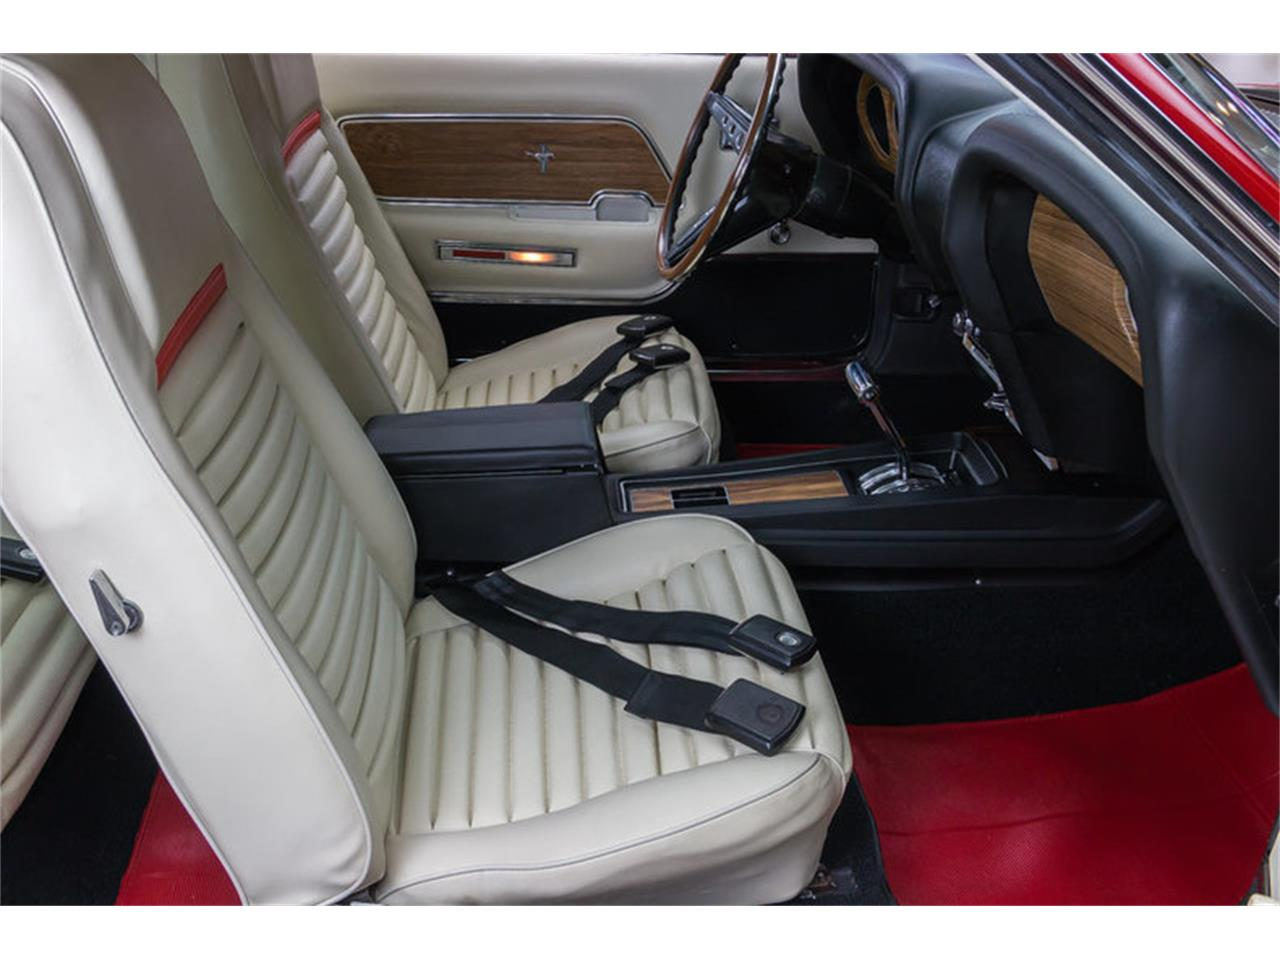 Large Picture of '69 Ford Mustang Mach 1 S Code located in Plymouth Michigan - $59,900.00 - IS3G